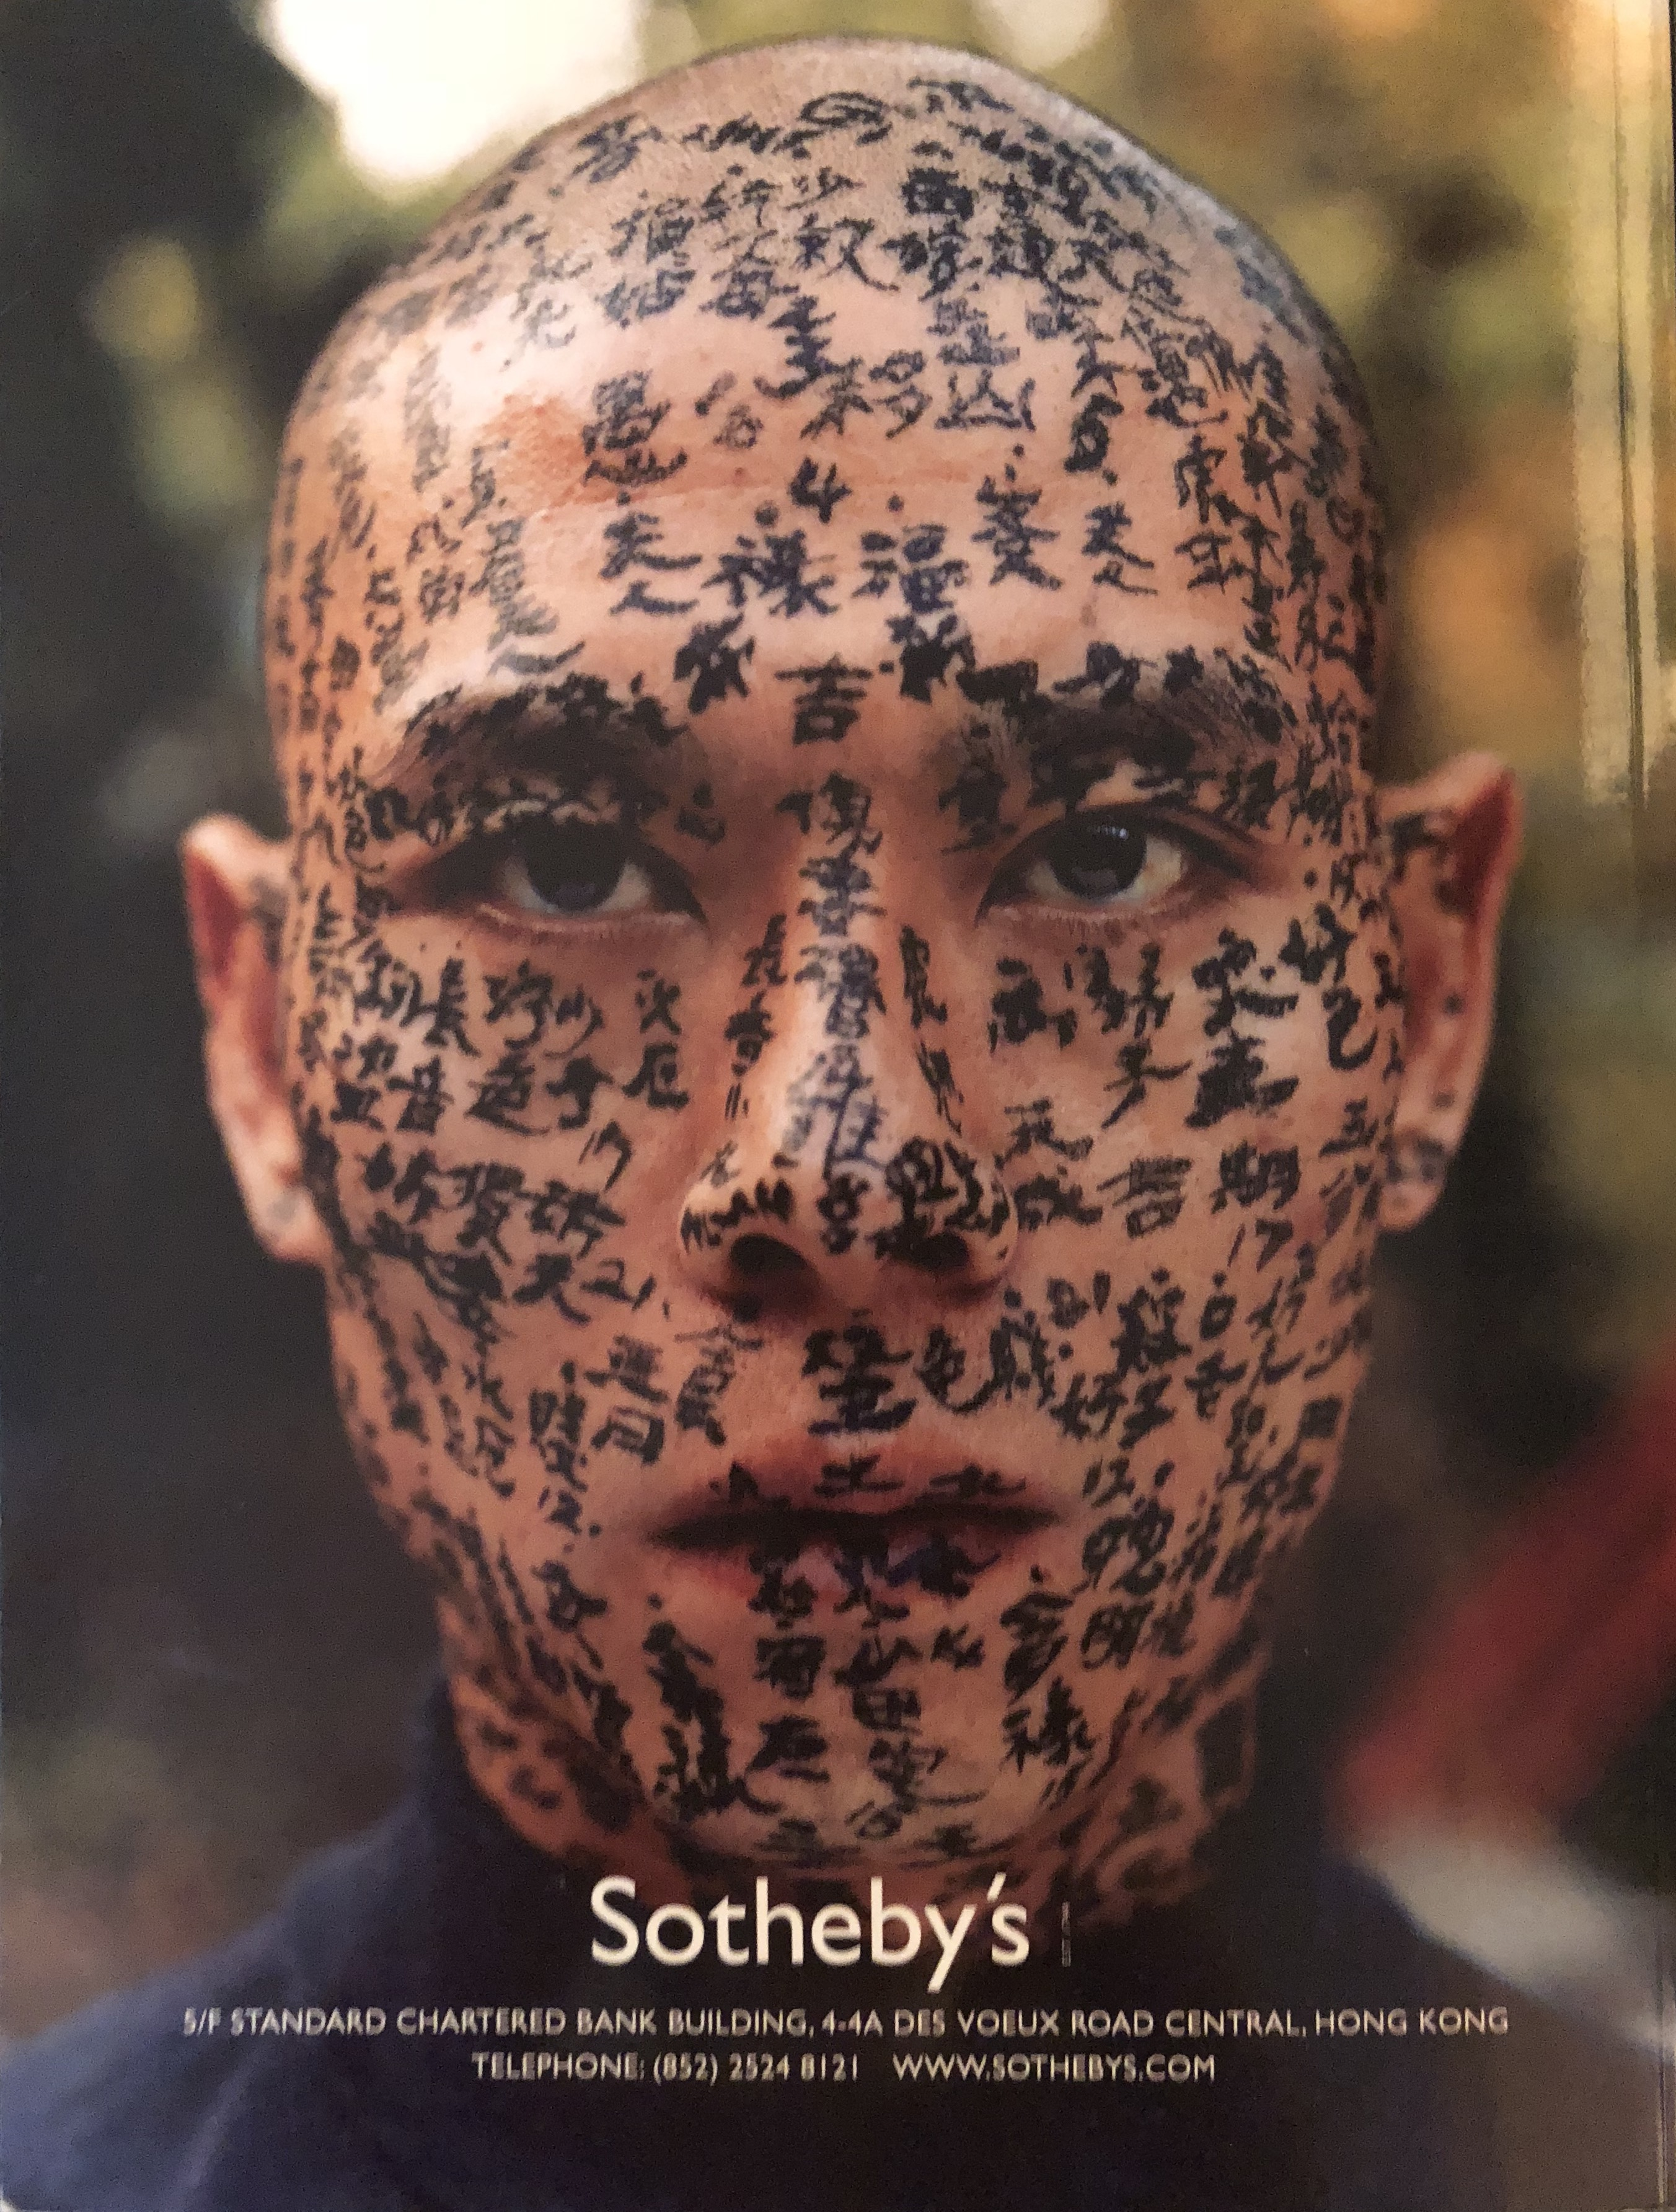 Genesis of an Auction Sale Category: Sotheby's Inaugural Auction of